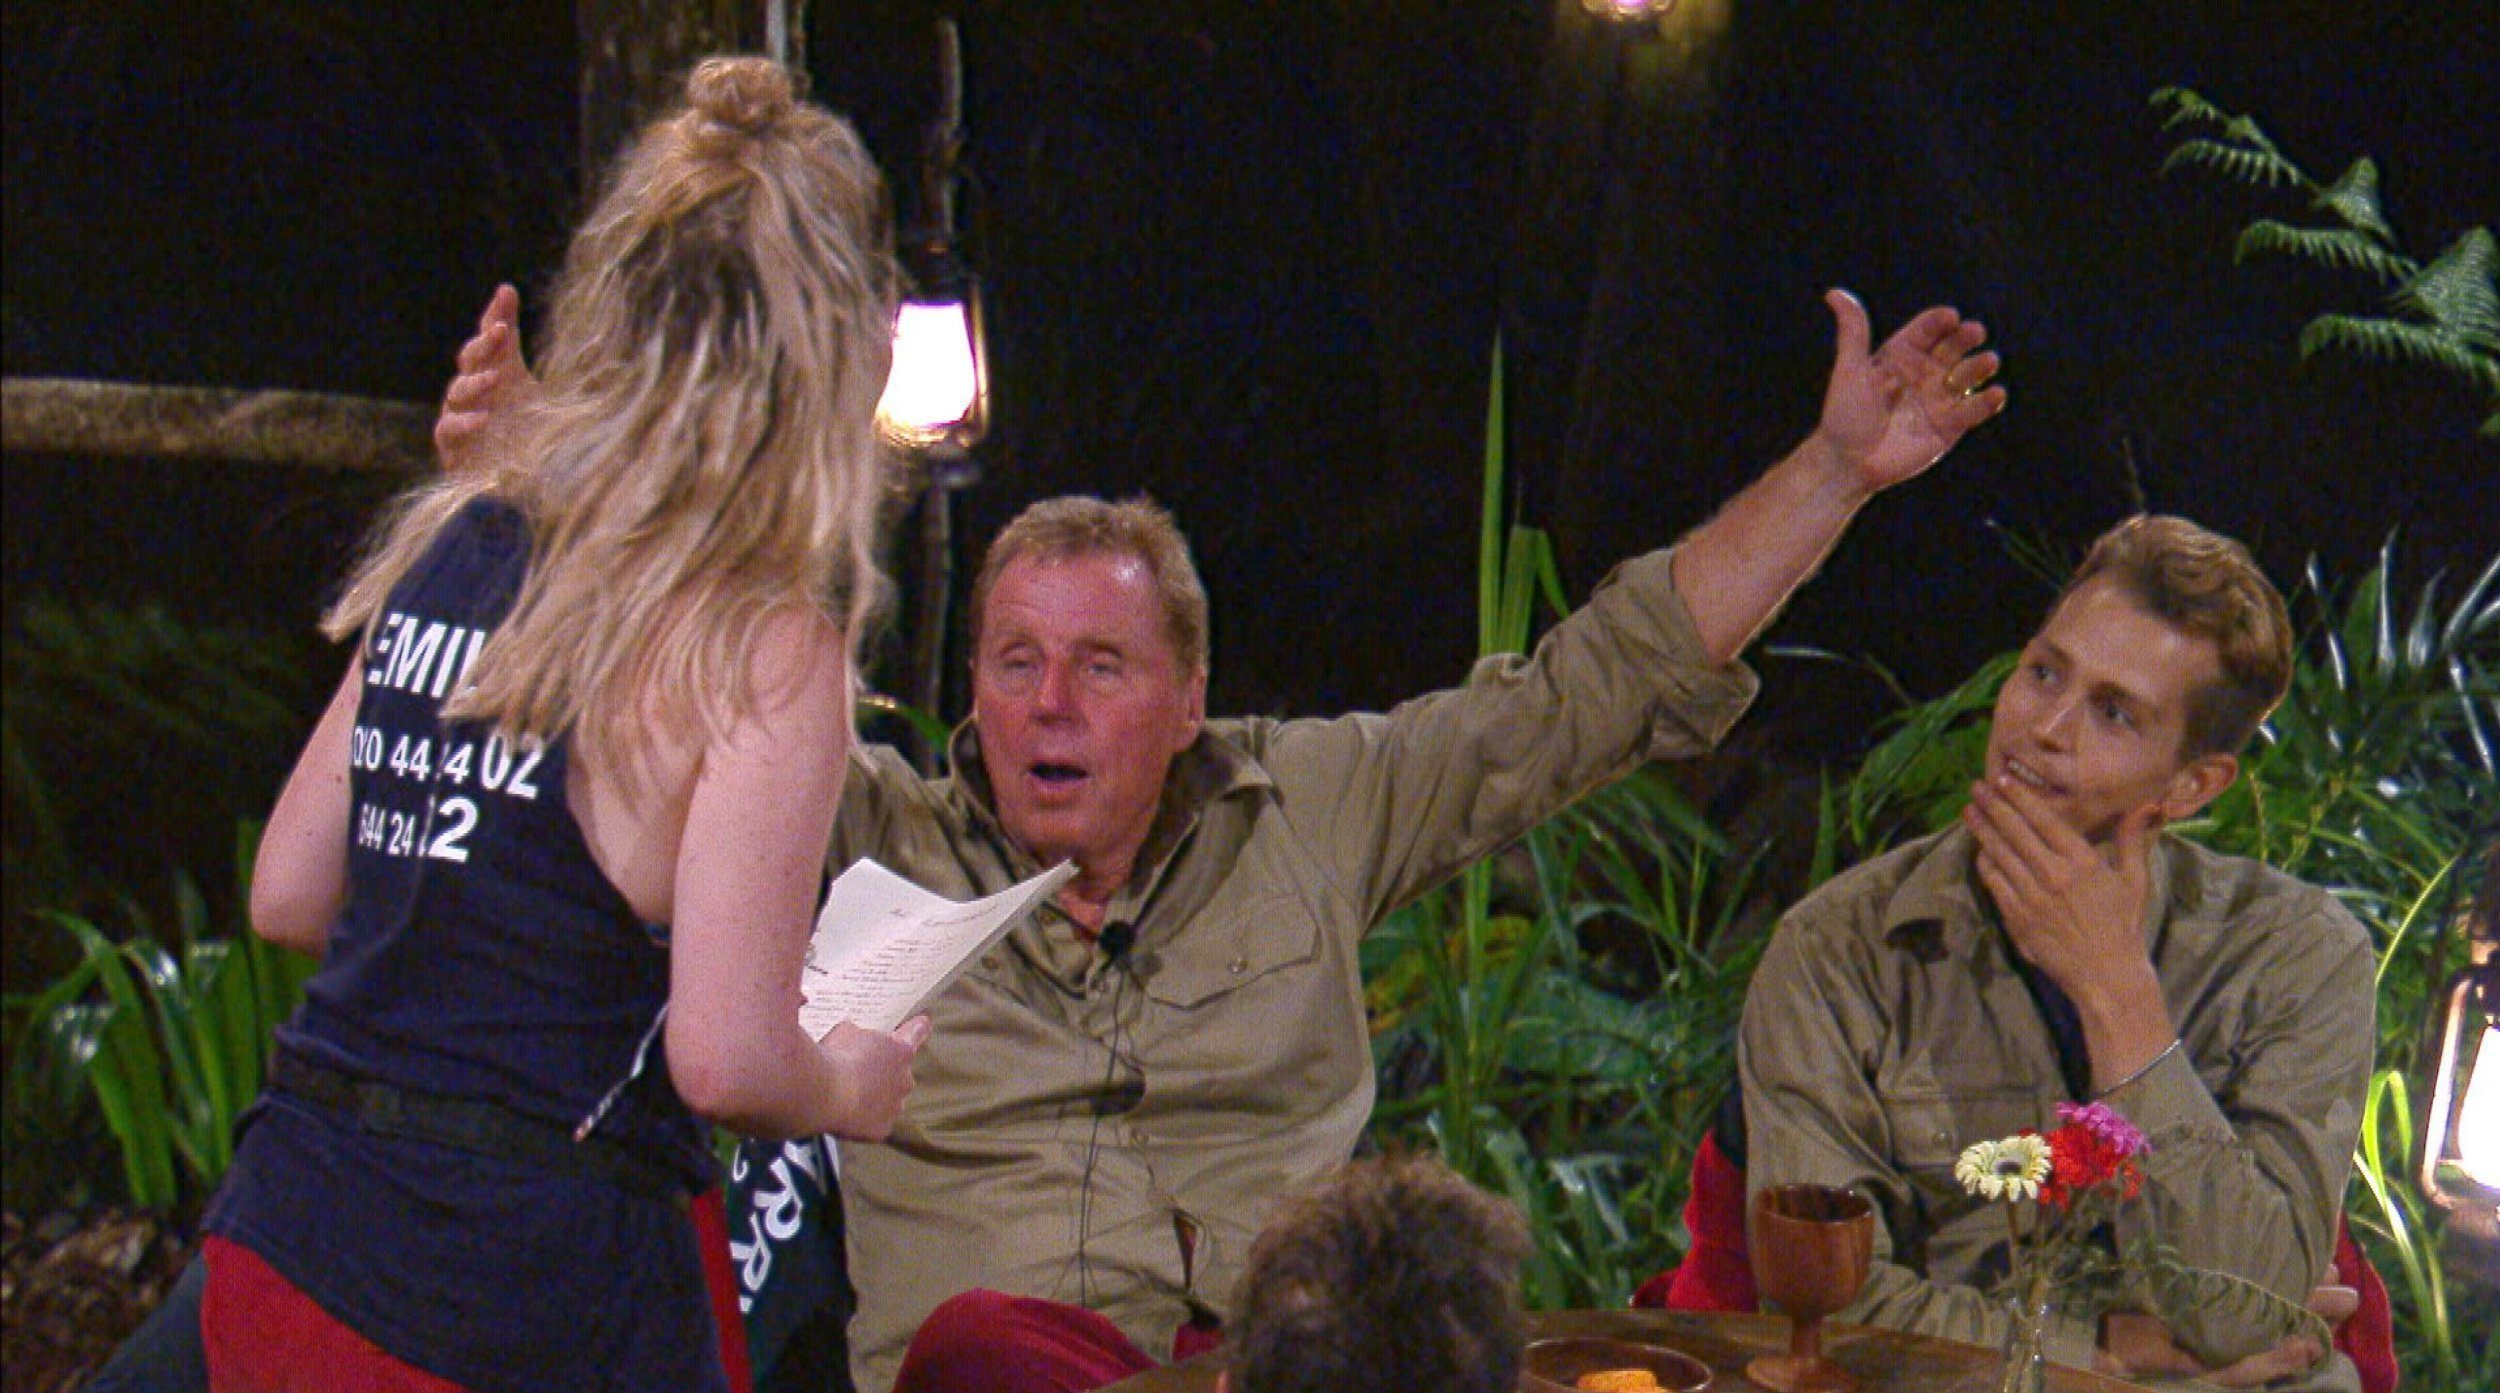 I'm A Celeb tension between Emily Atack and Harry Redknapp as she accuses him of 'cheating' on trial